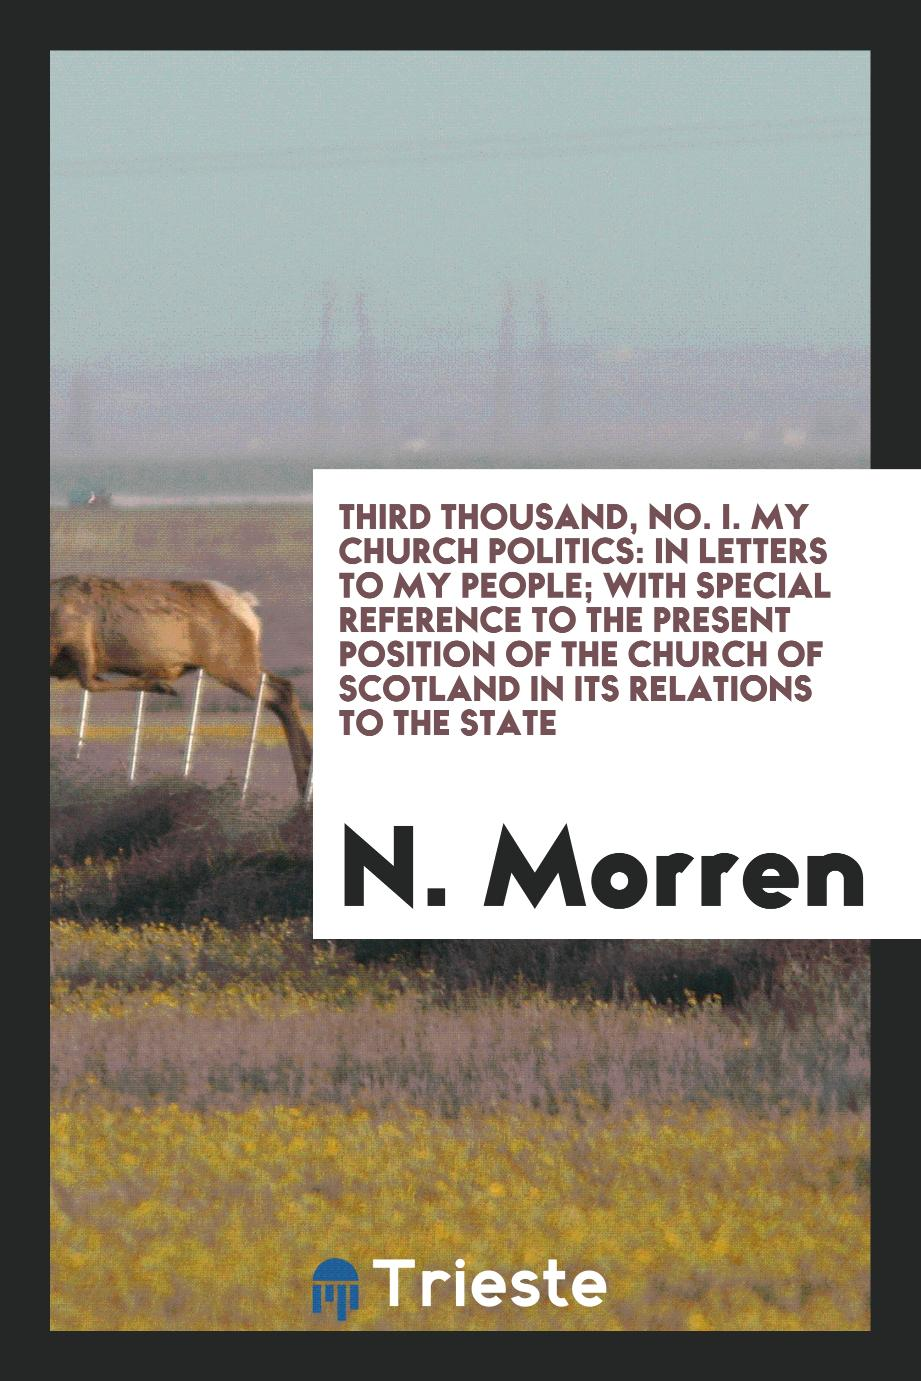 Third Thousand, No. I. My Church Politics: In Letters to My People; With Special Reference to the Present Position of the Church of Scotland in Its Relations to the State